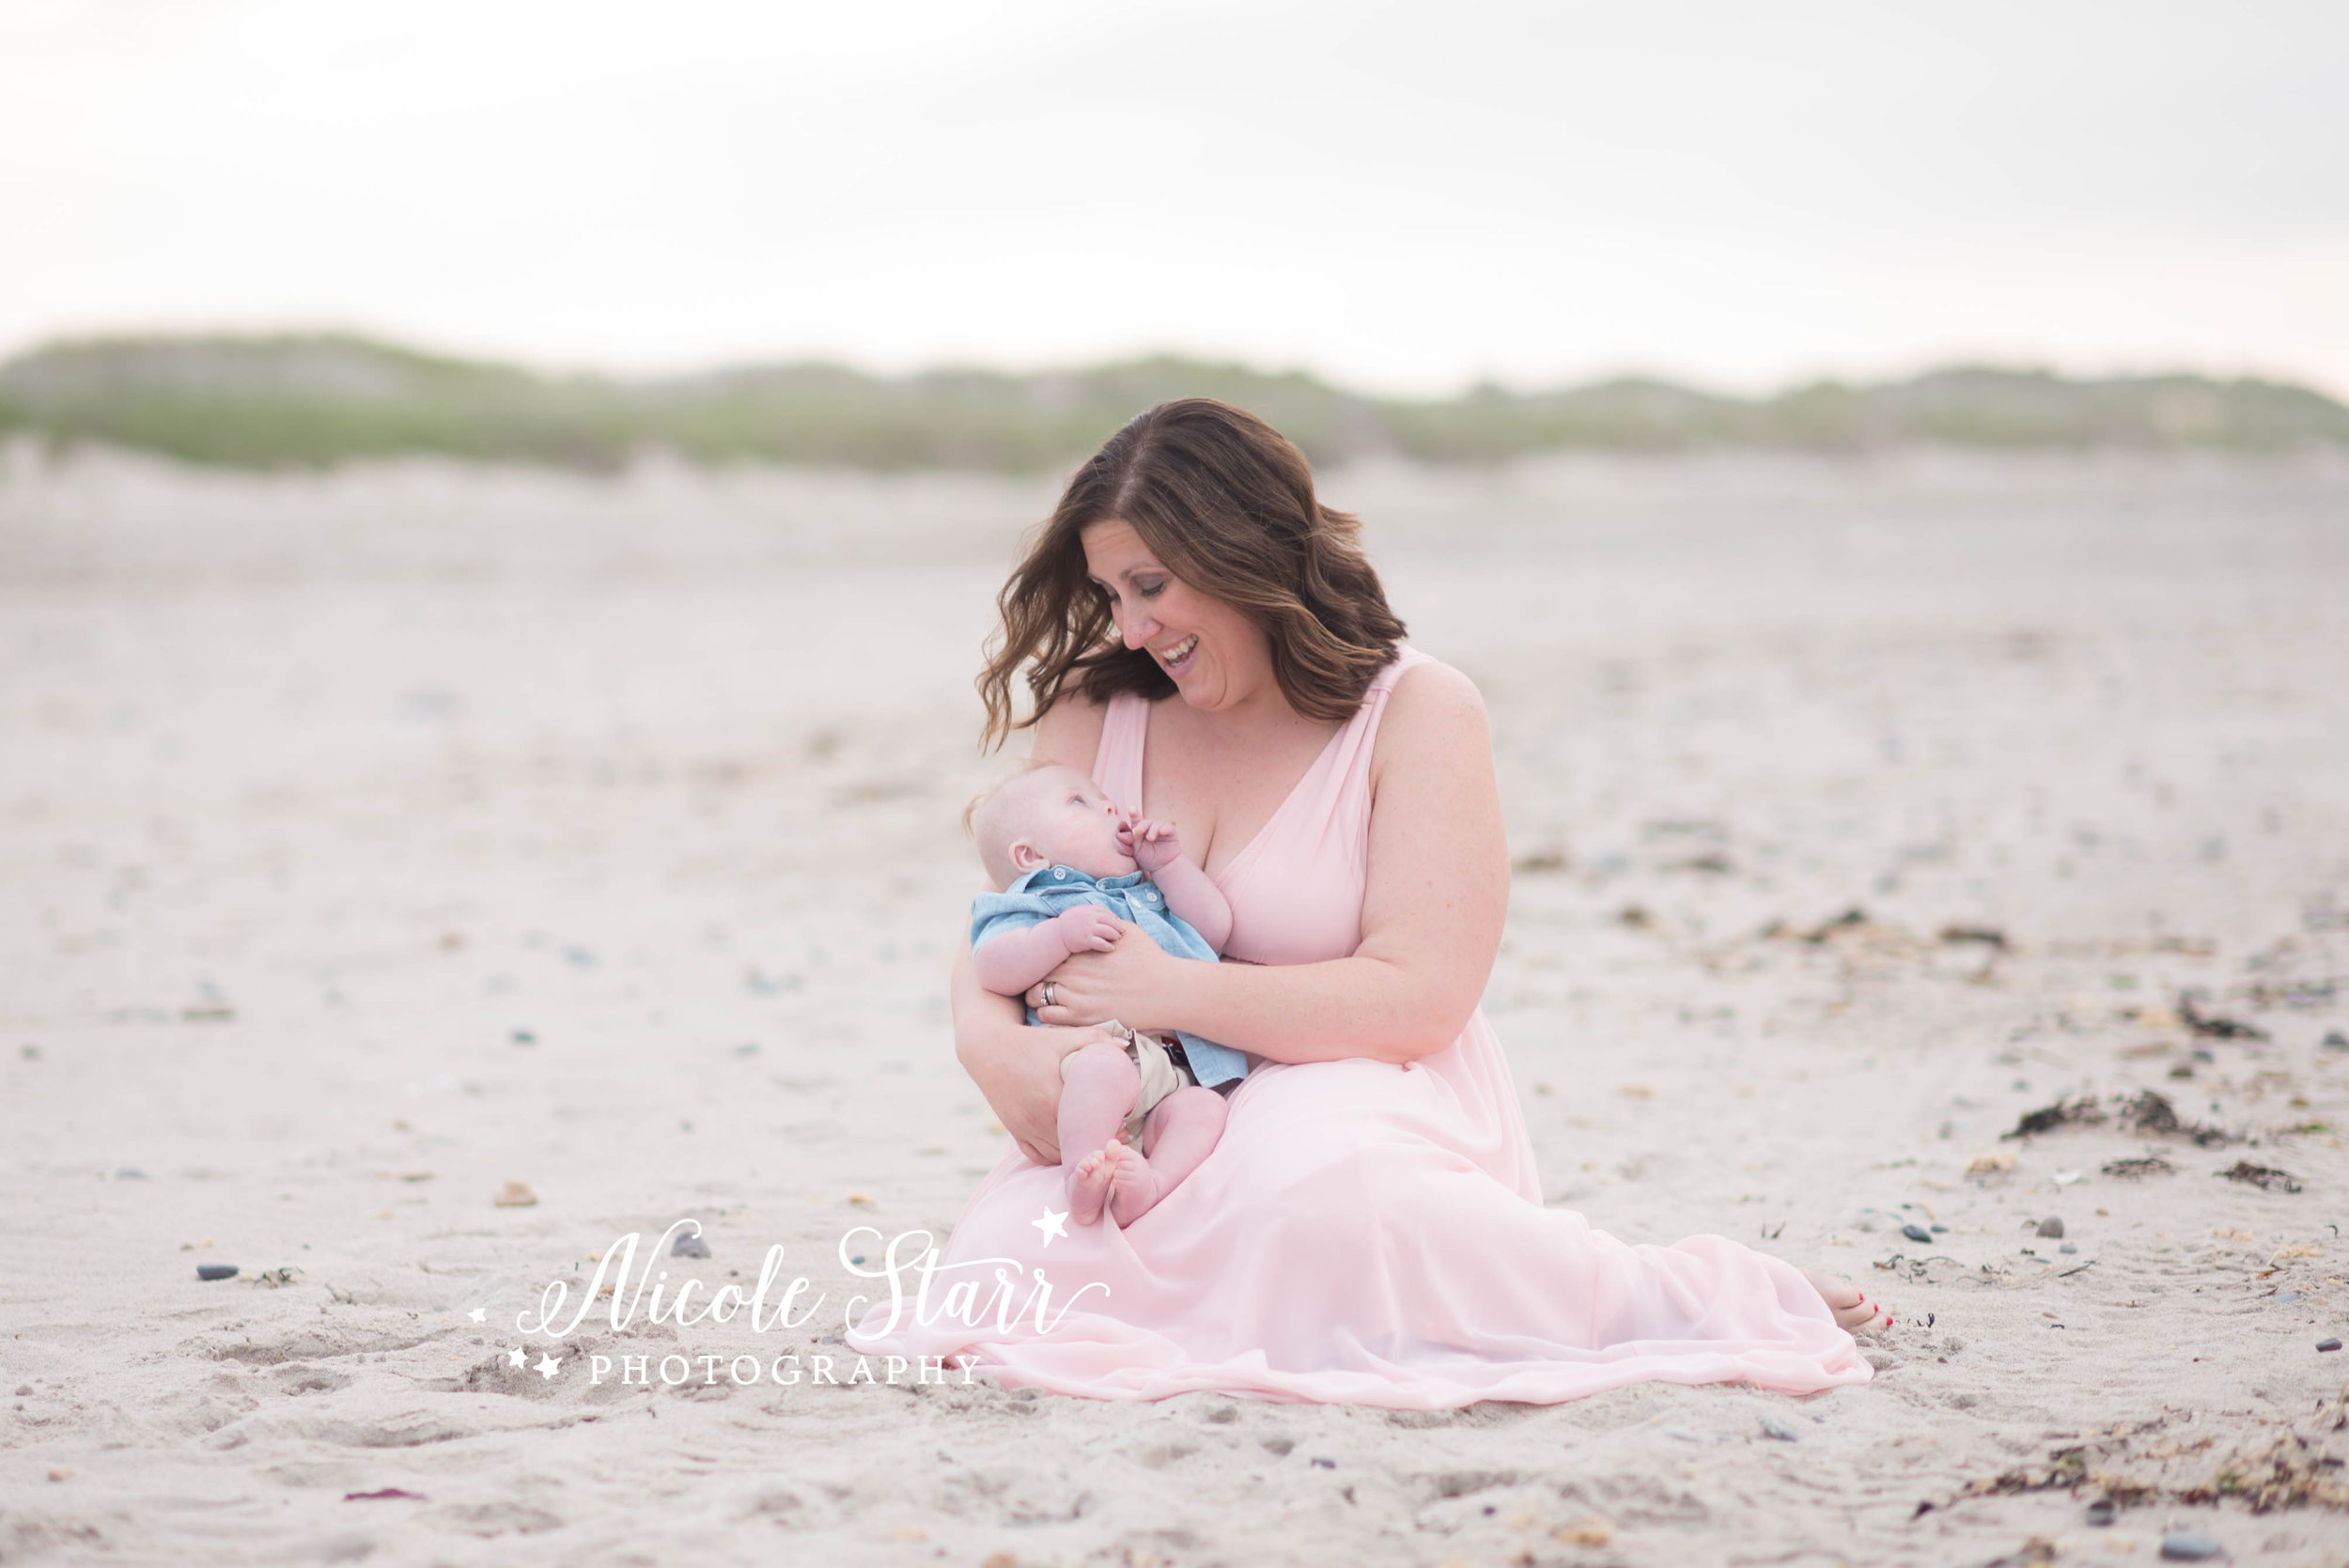 Nicole Starr Photography | Saratoga Springs Baby Photographer | Boston Baby Photographer | Upstate NY Baby Photographer | Baby Photographer